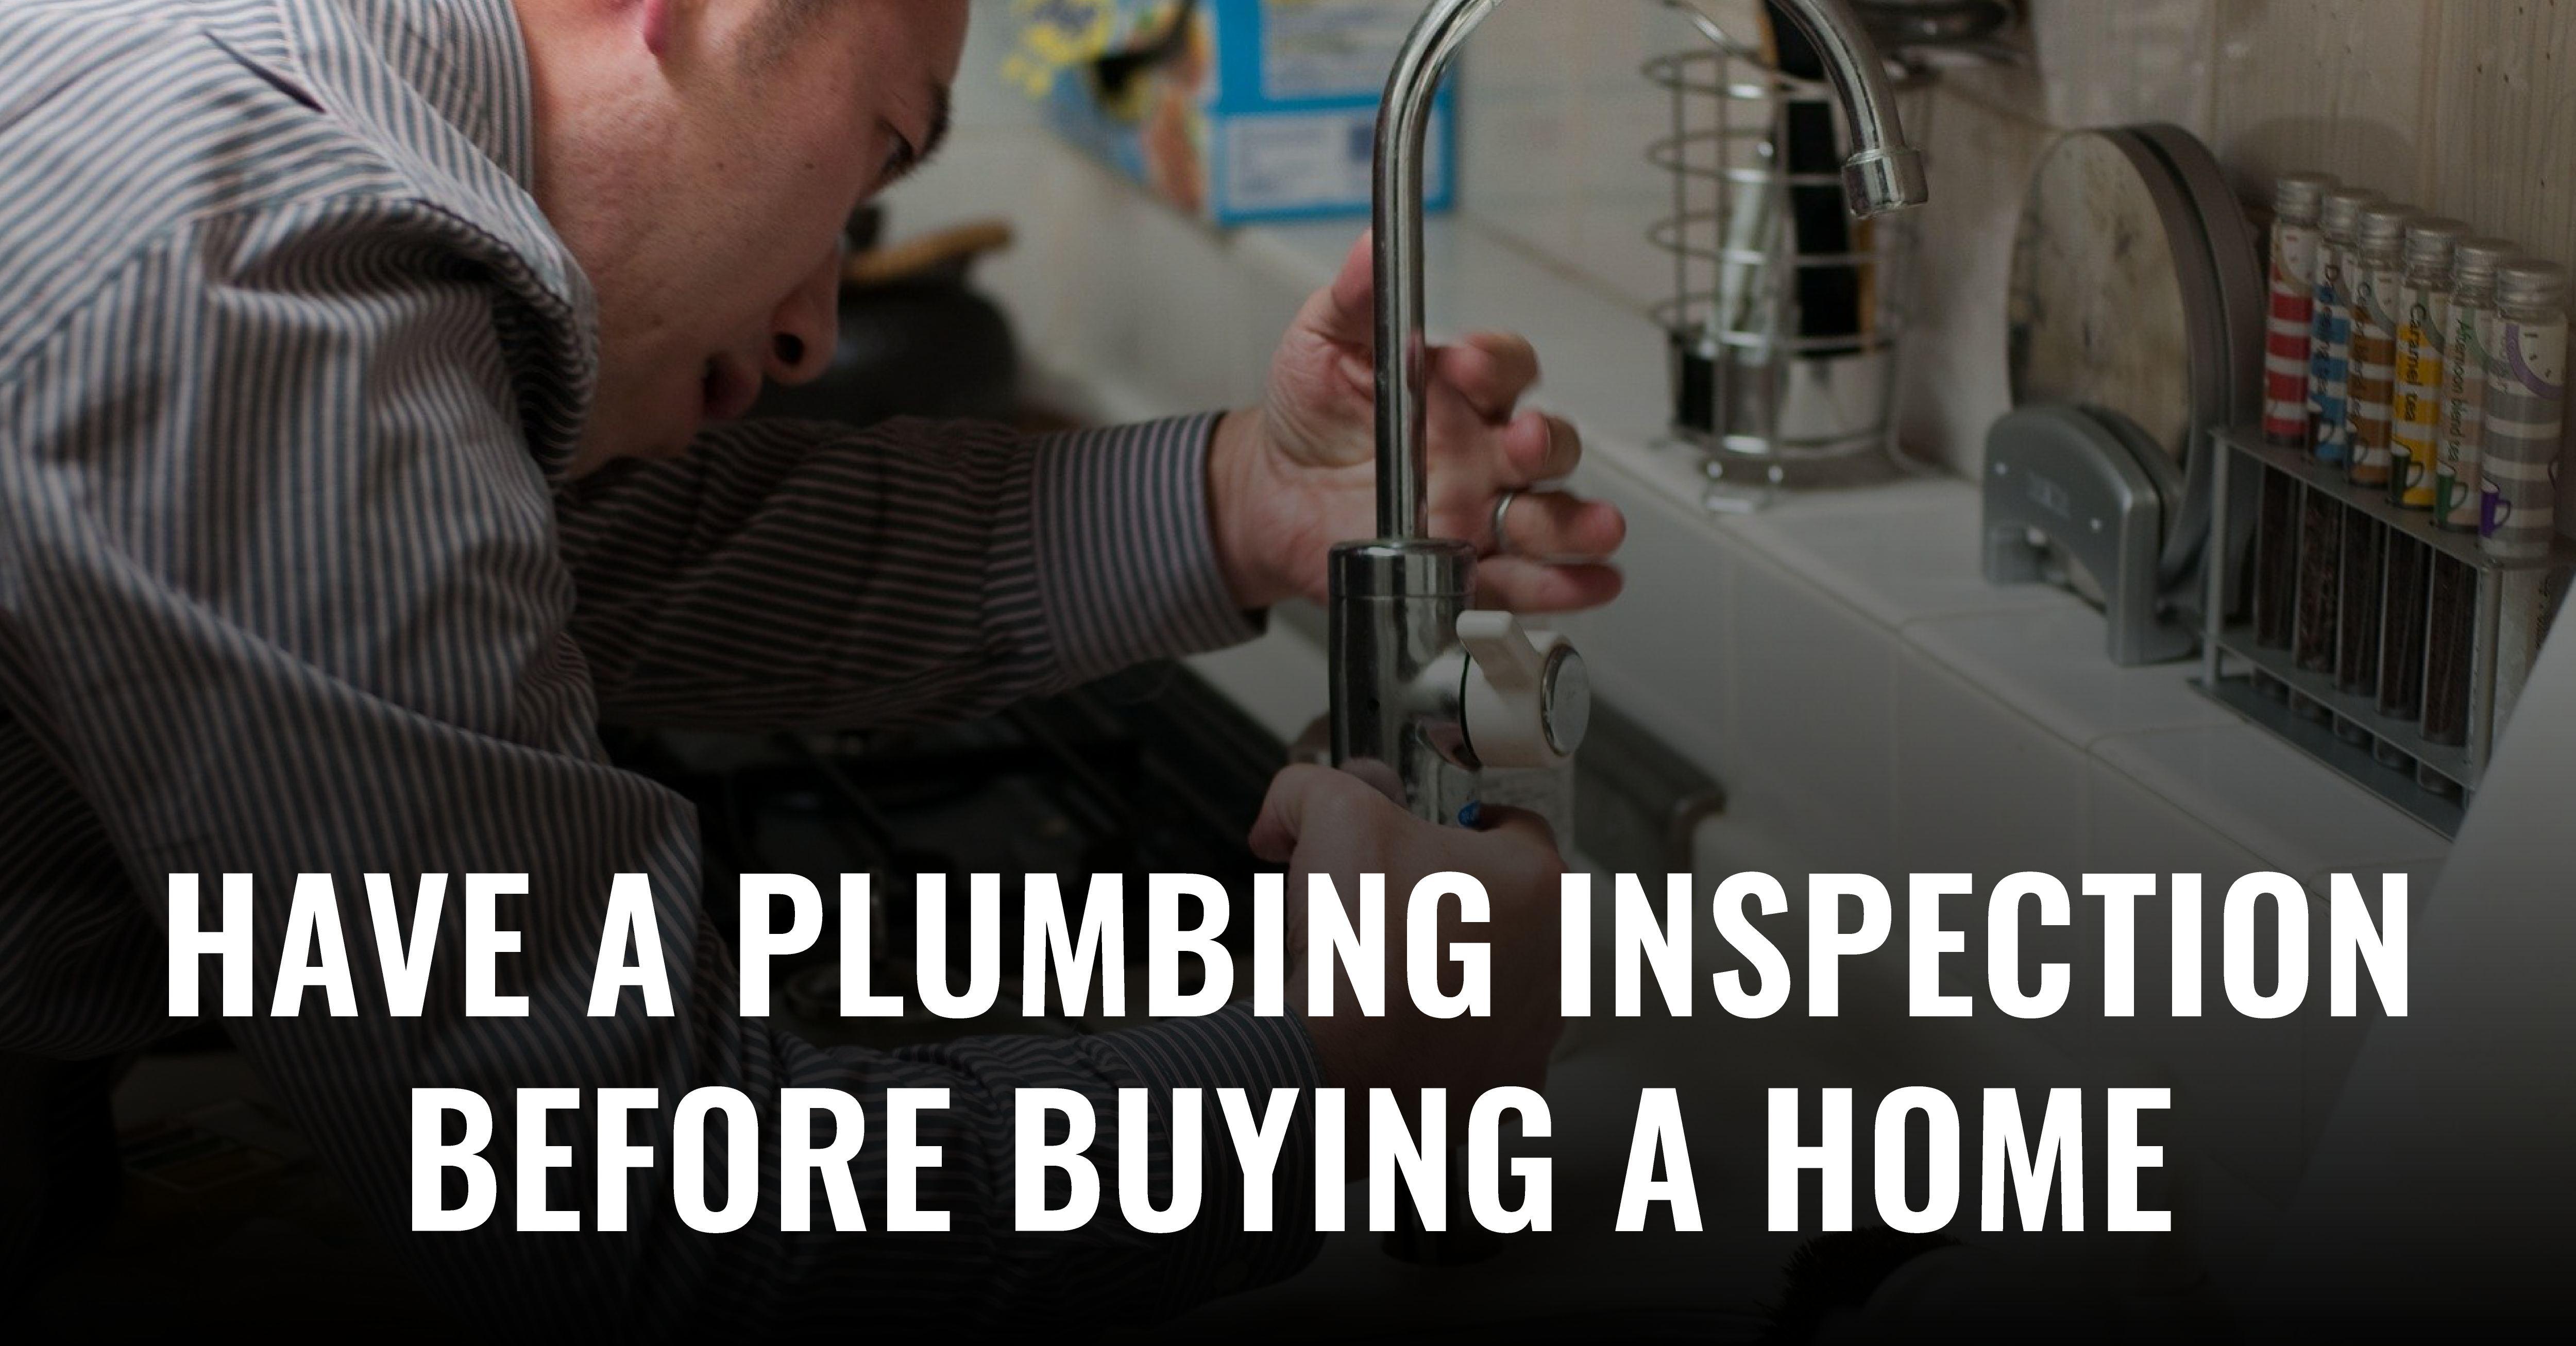 Why You Should Have A Plumbing Inspection